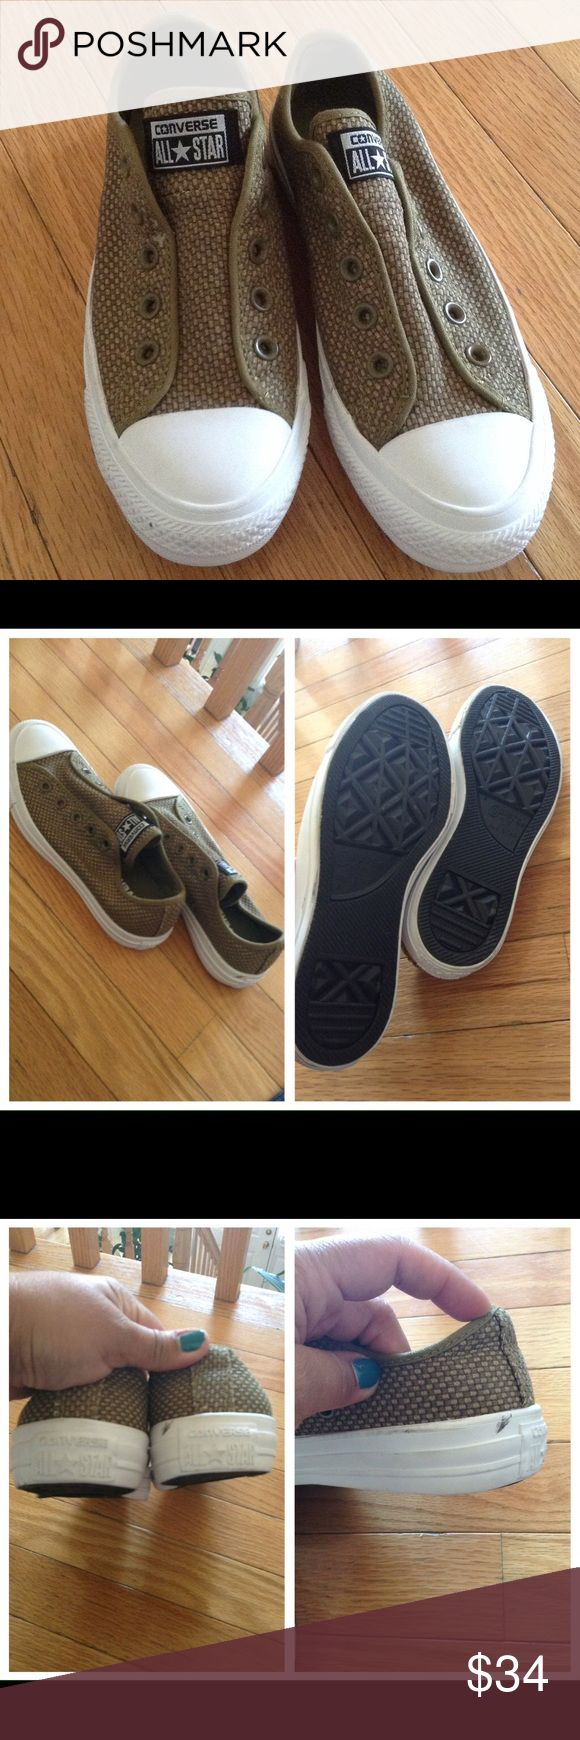 ✨Women's 💯 Converse All Star Ox Woven Slip On✨ ✨Converse Ox Woven Casual Sneakers✨Slip On✨Model #146441F✨Cactus Color✨REPOSH - did not fit me, could never figure out Converse sizing✨Hopefully YOU can give it a new home✨My lost, your gain!!!✨No box✨Scuff shown in pics Converse Shoes Sneakers